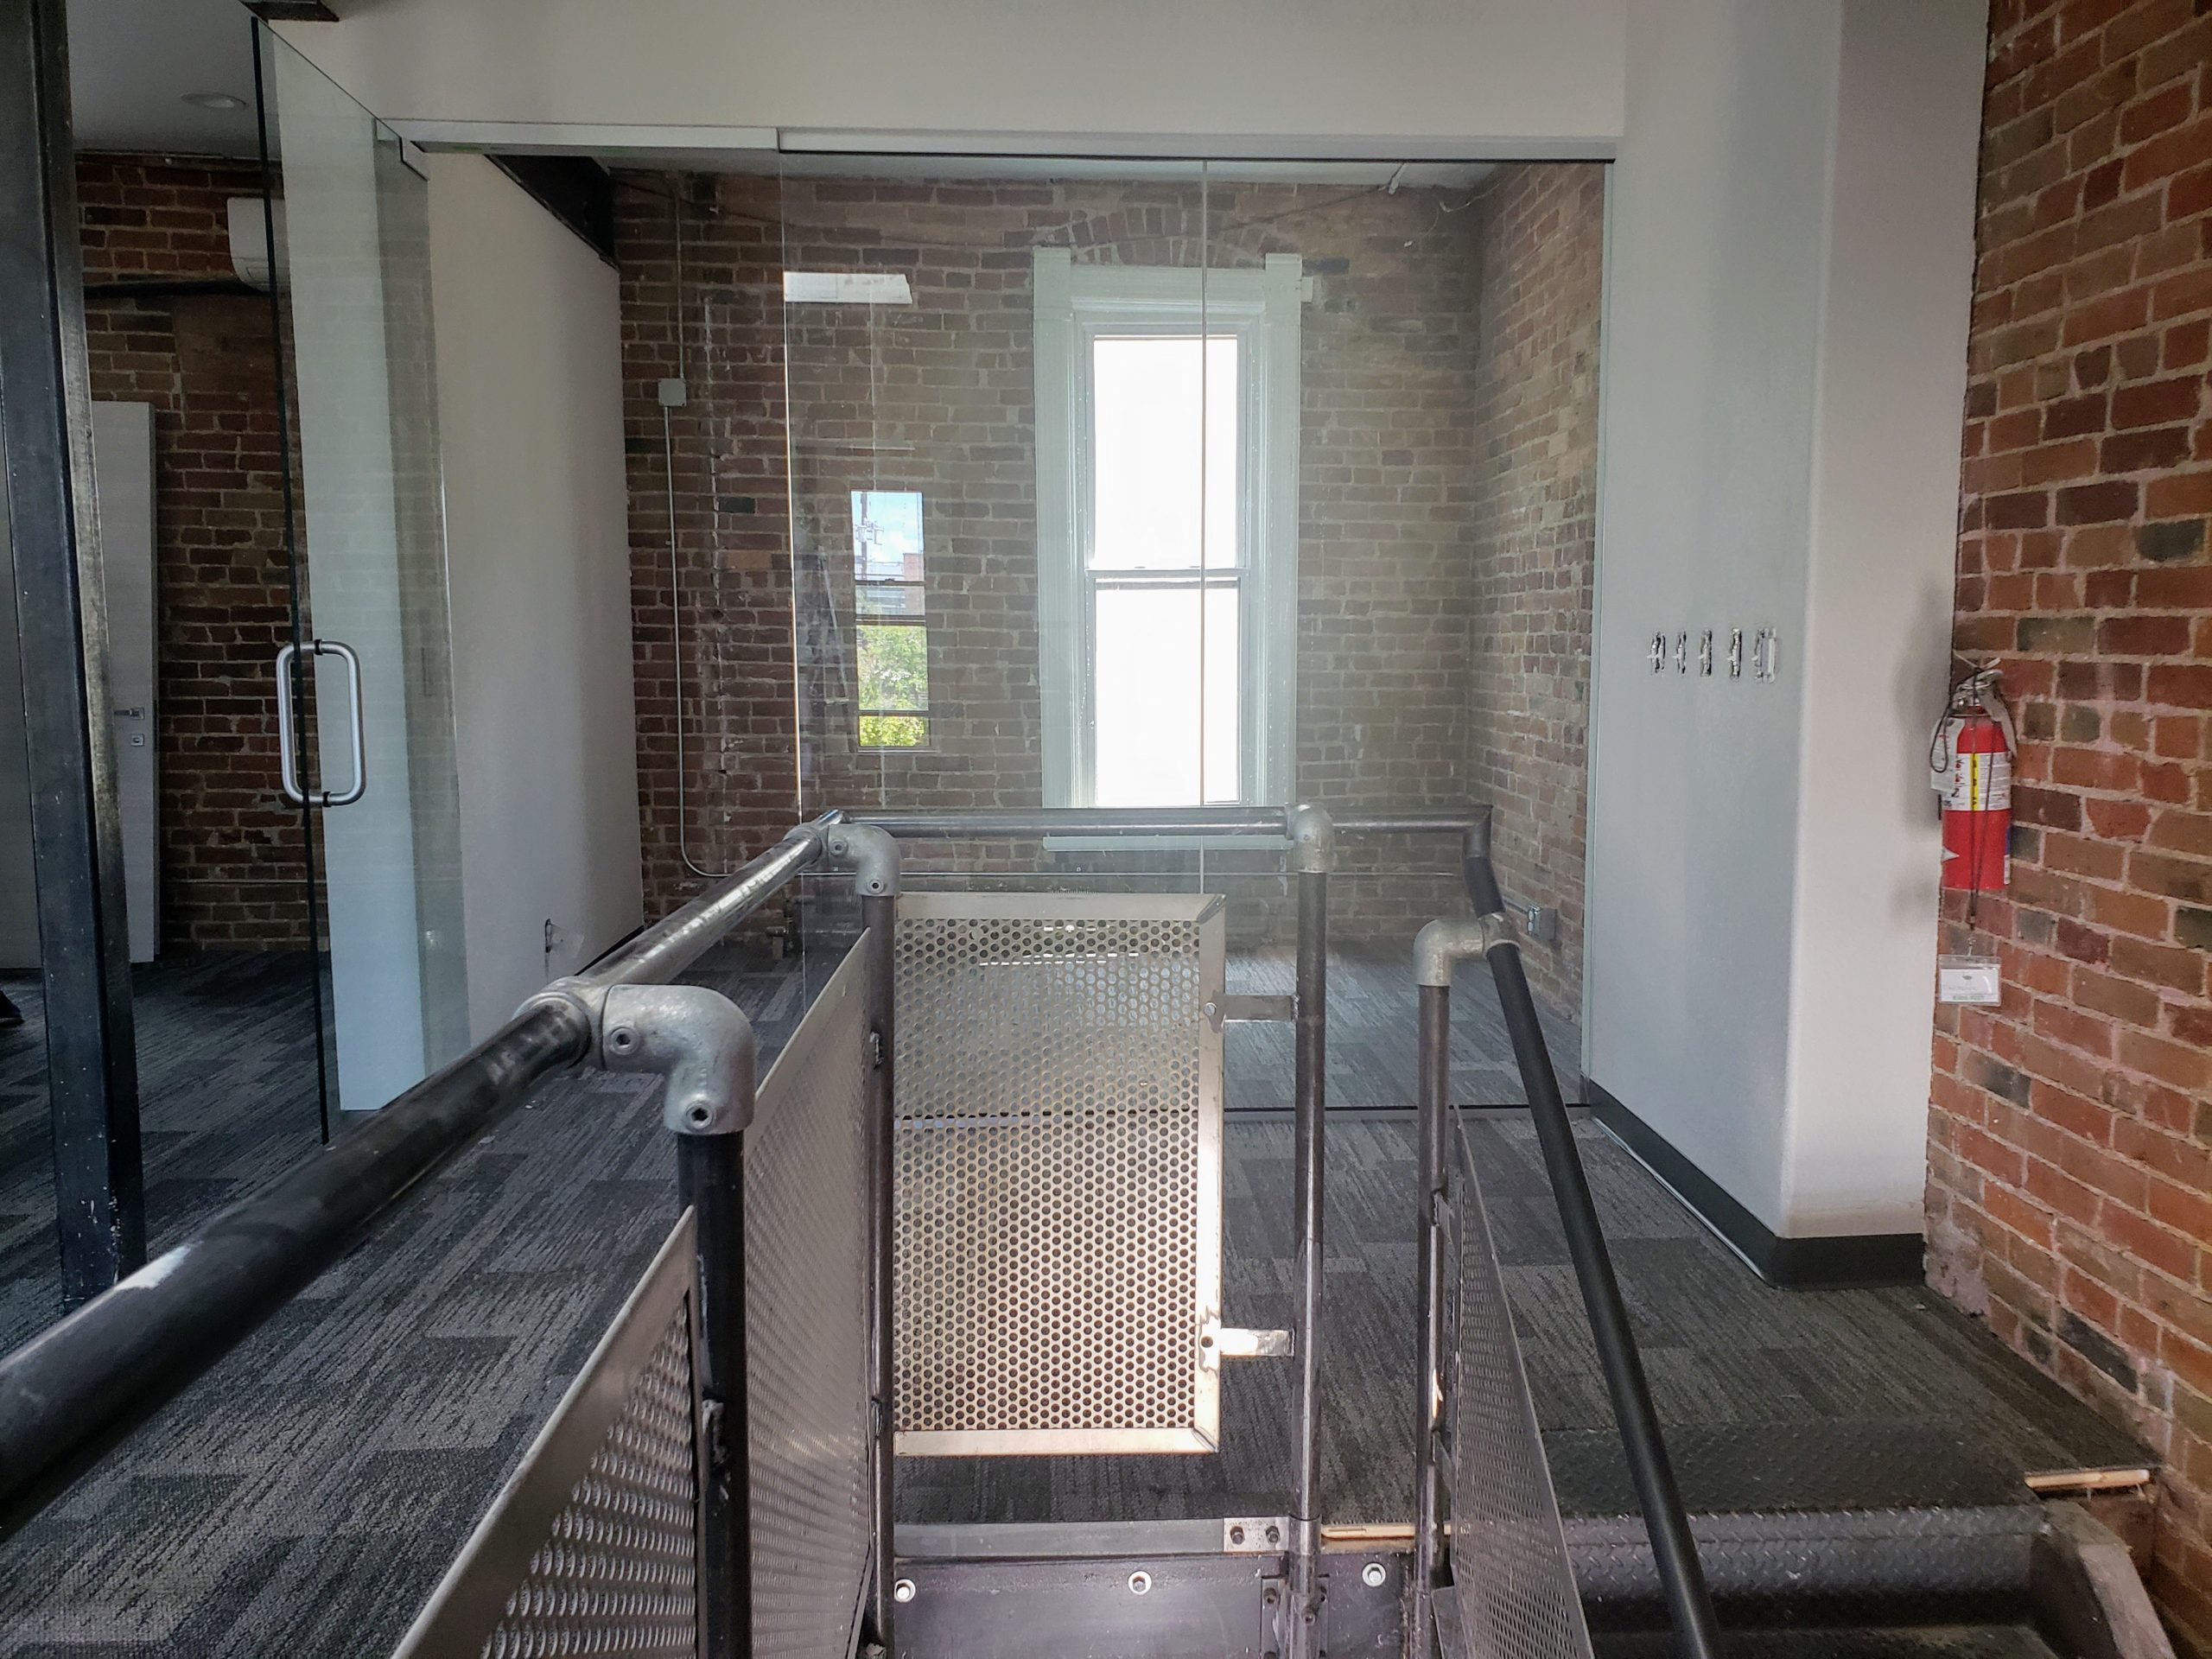 Summit Church Office stairs iron steel railing glass walls stairwell